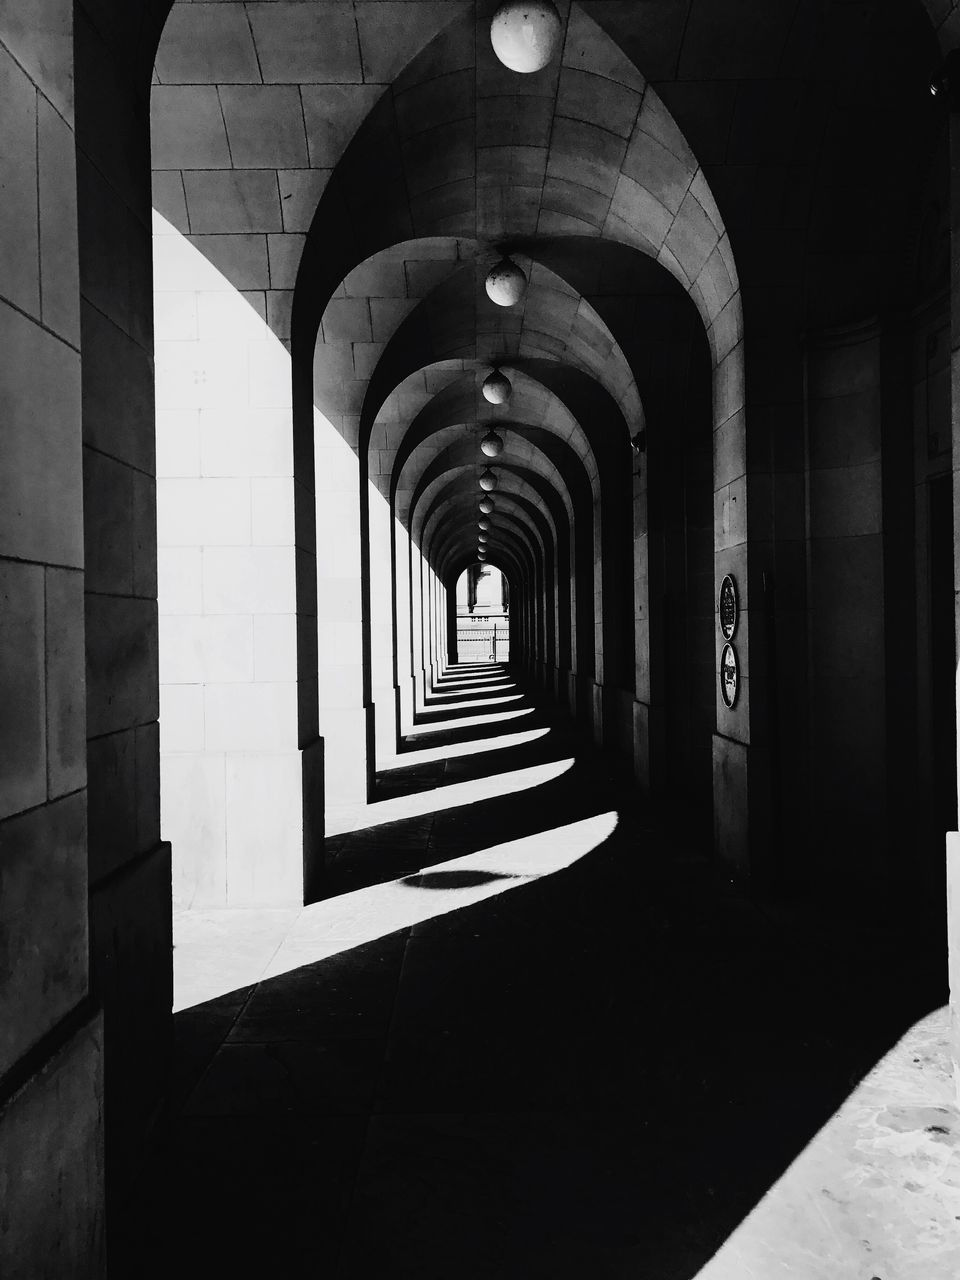 the way forward, architecture, built structure, arch, in a row, indoors, corridor, no people, architectural column, day, illuminated